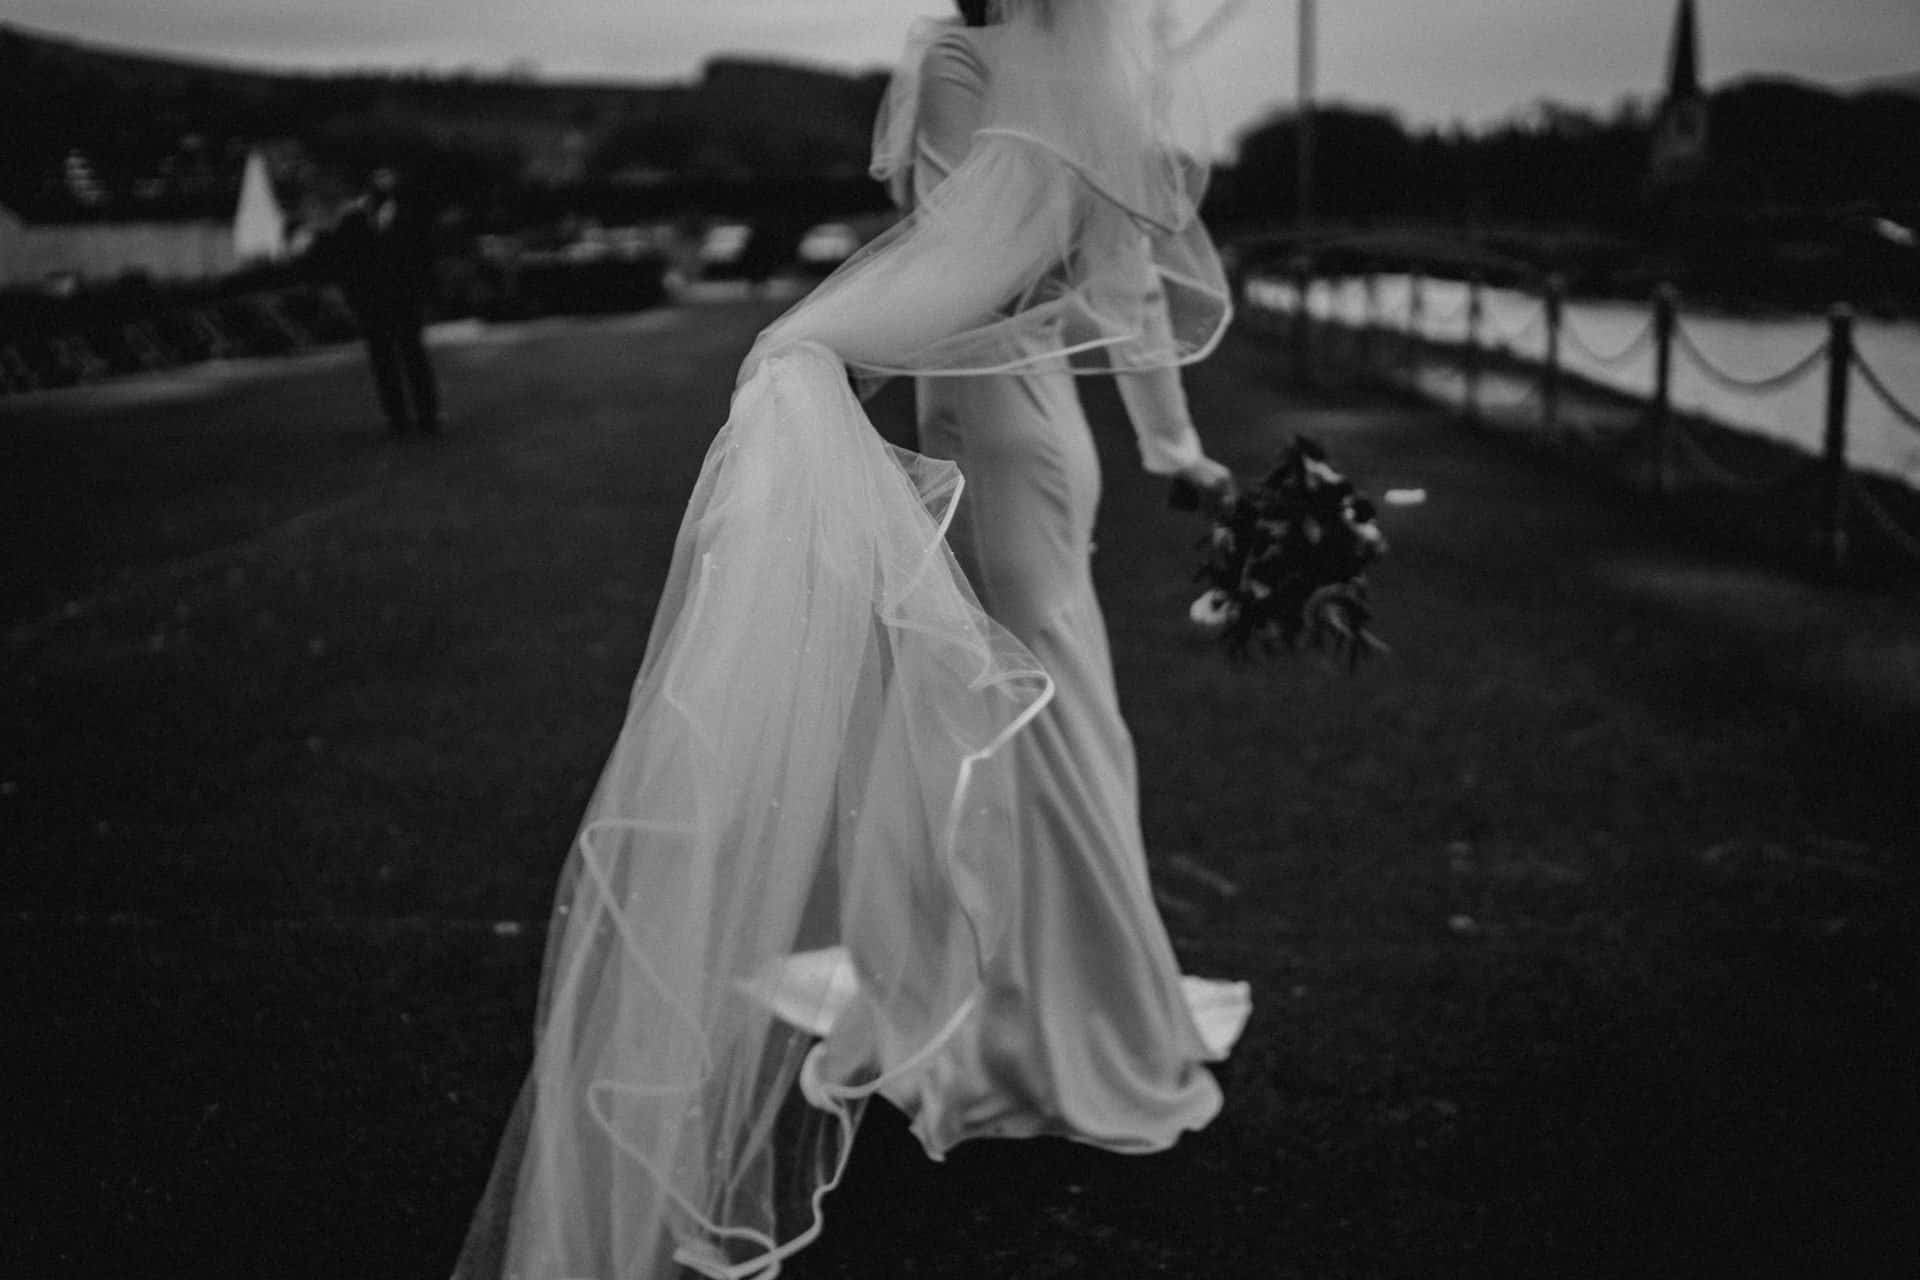 black and white image of a bride holding her veil and it blowing in the wind